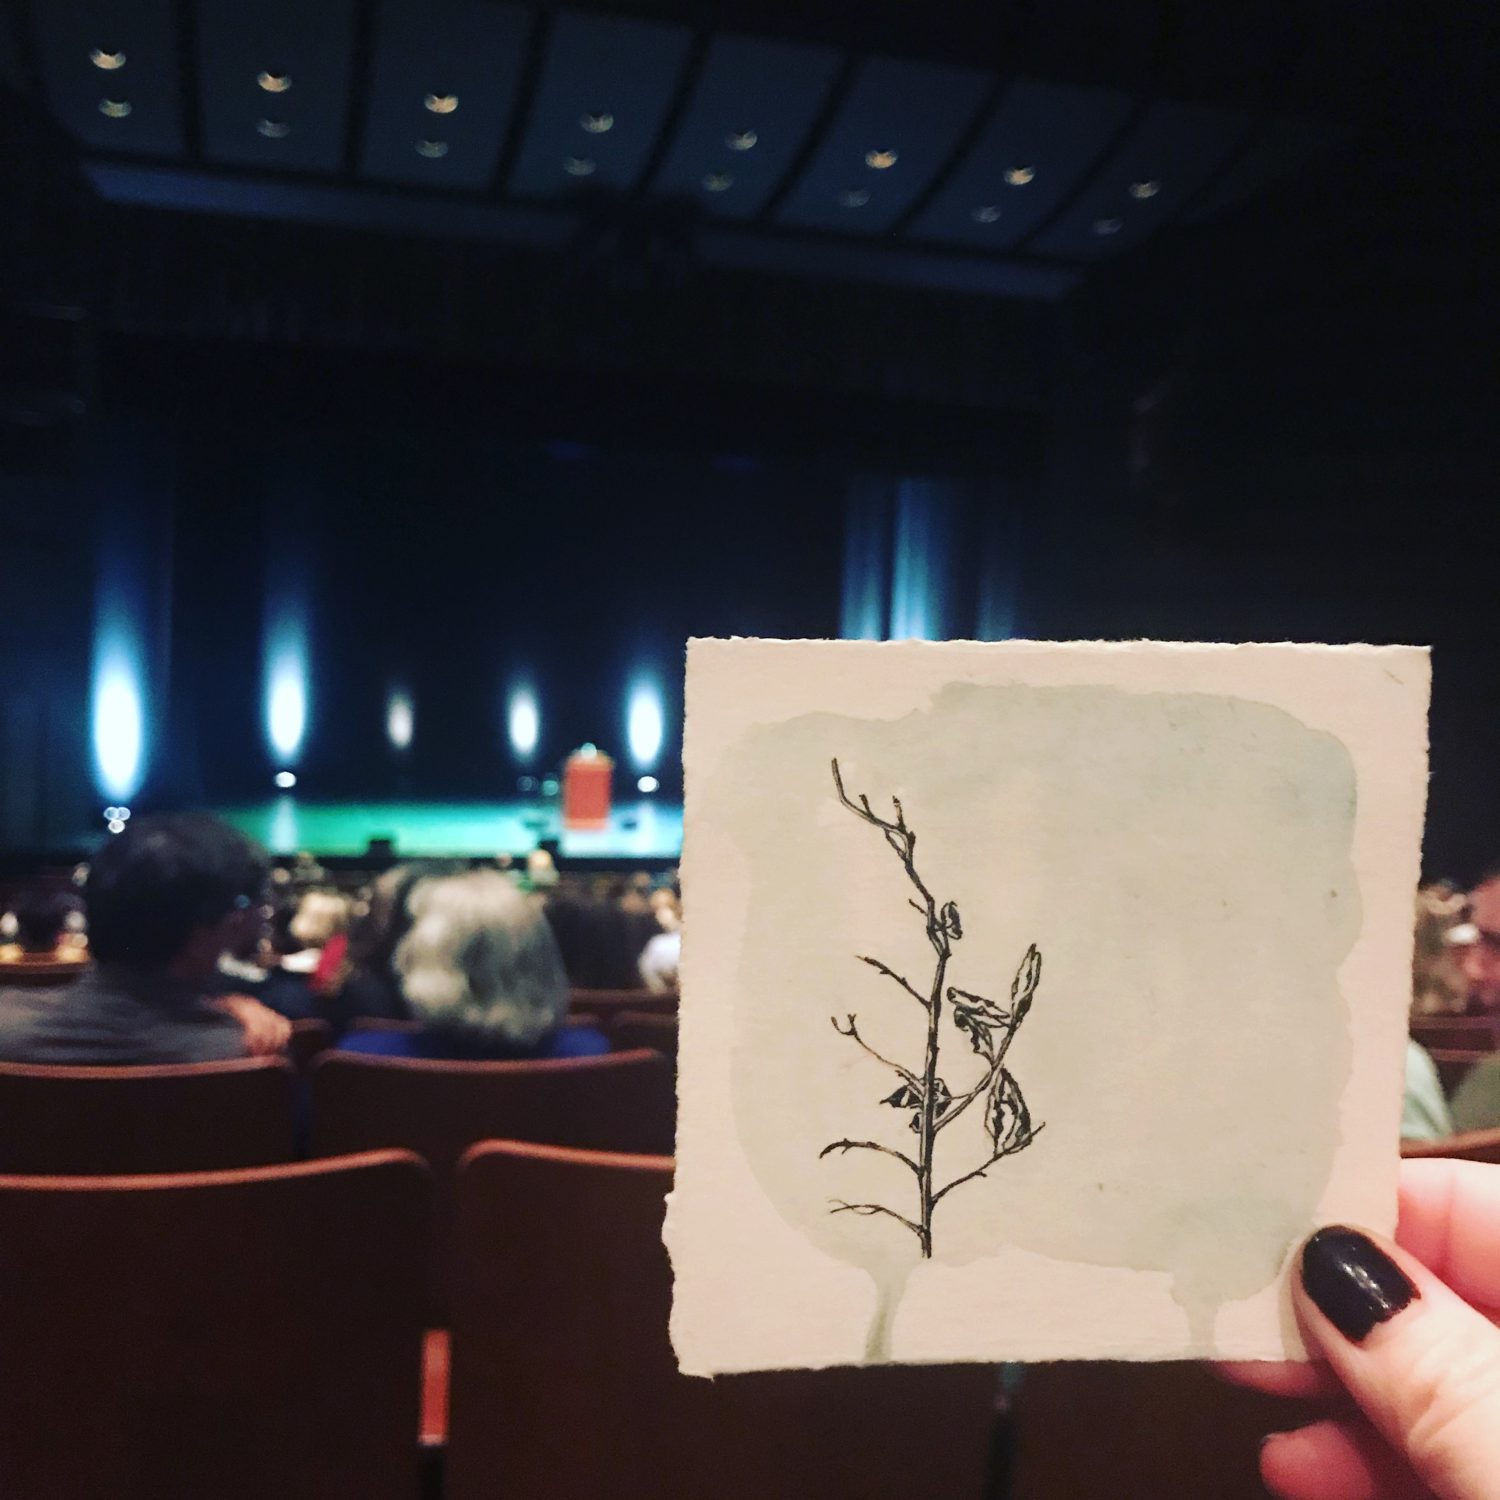 Put it out there and then let it go (alternate title: That time I gave a drawing to David Sedaris)